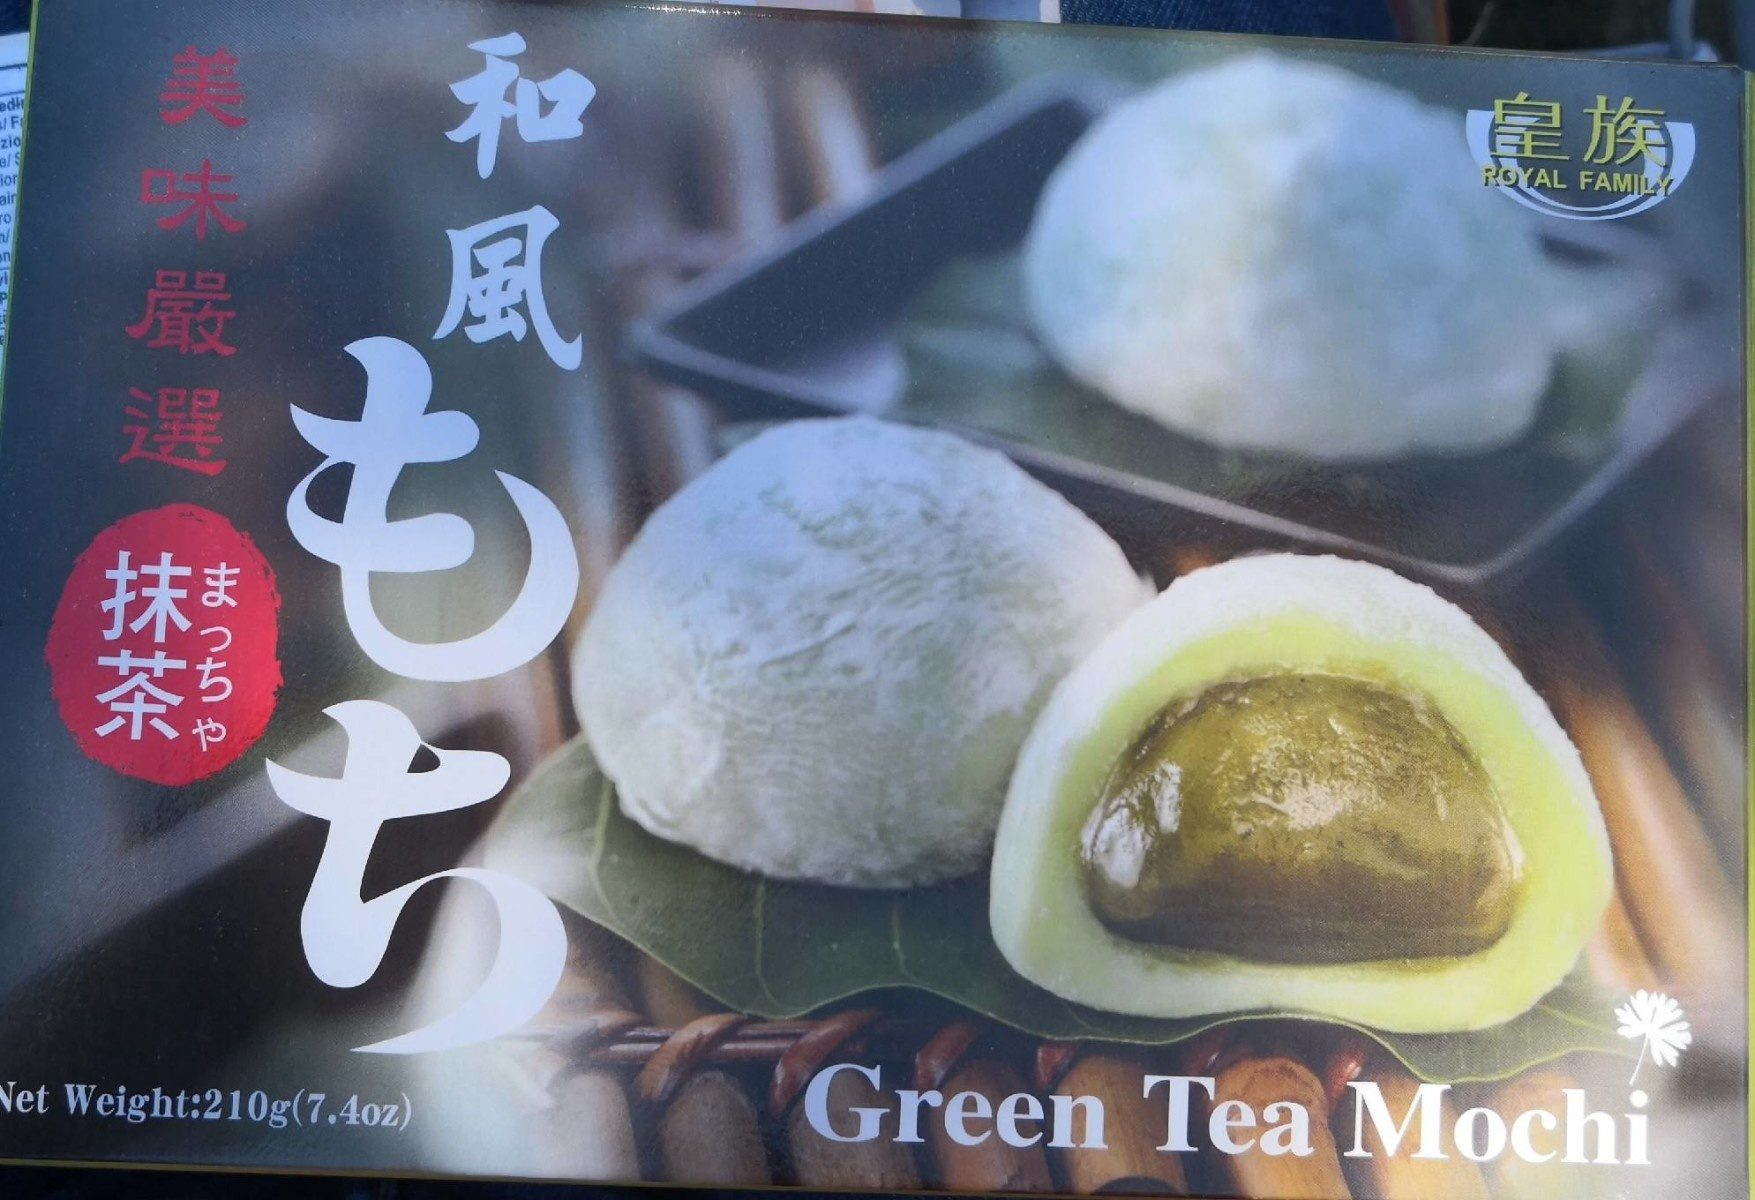 Green Tea Mochi - Produit - fr